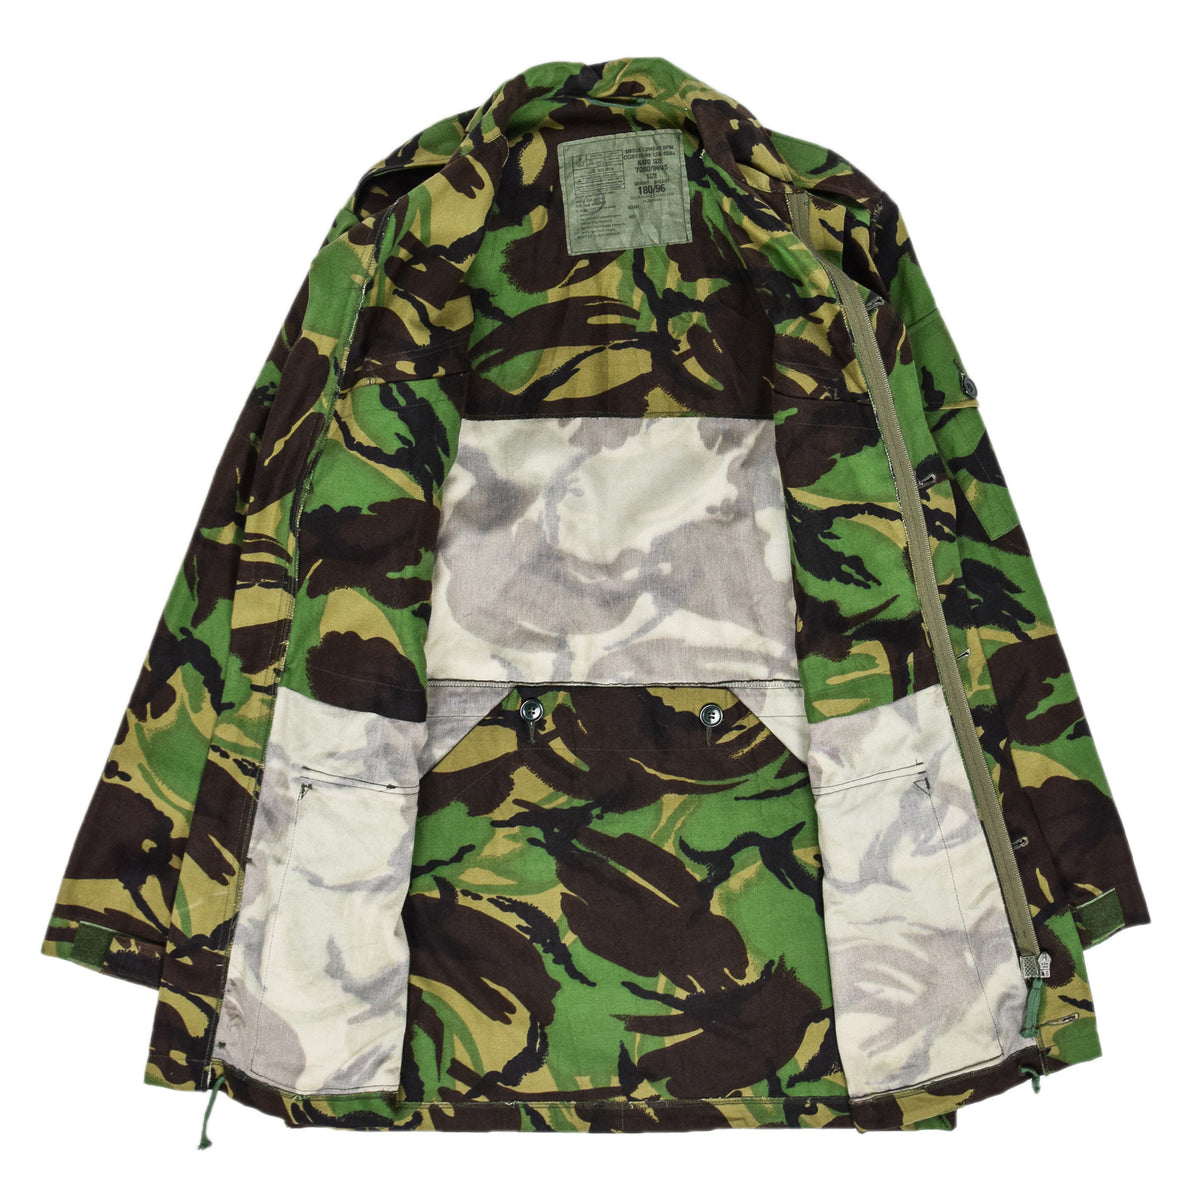 Vintage 90s British Army Combat Smock Woodland DPM Camo Jacket M INTERNAL